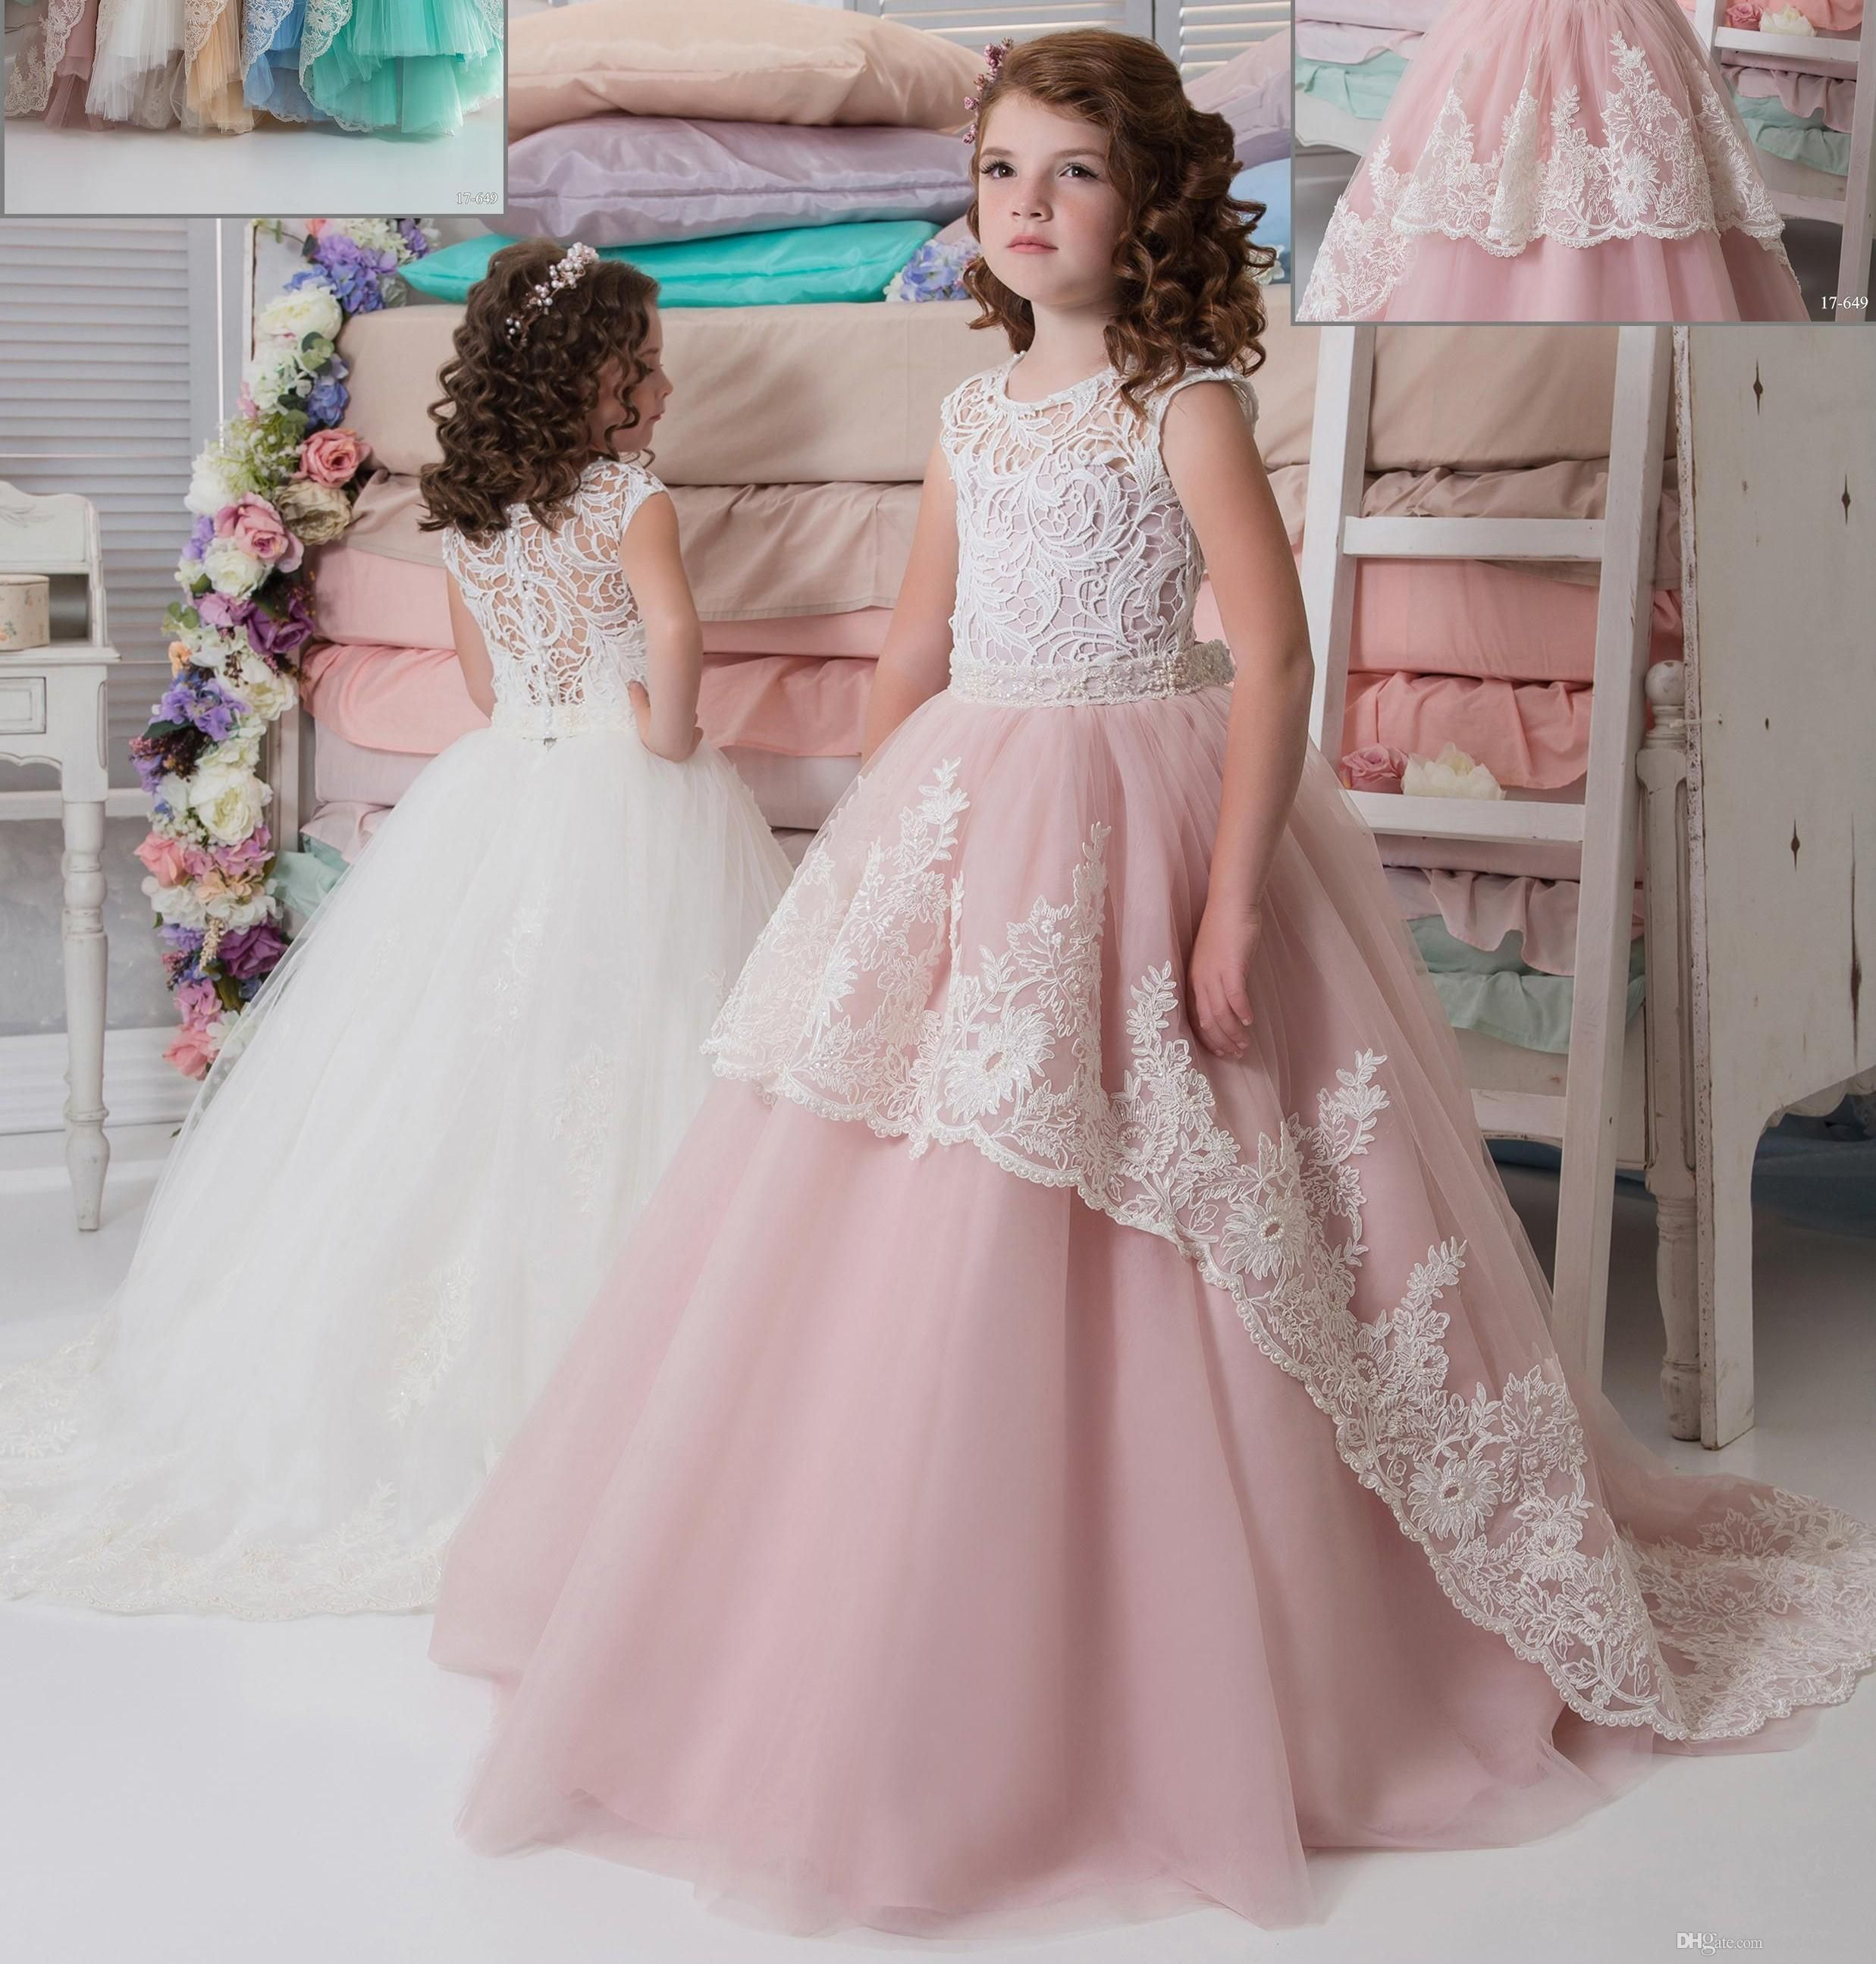 7934da3cd887 Lace Beaded Arabic 2017 Flower Girl Dresses Crew Ball Gown Vintage ...